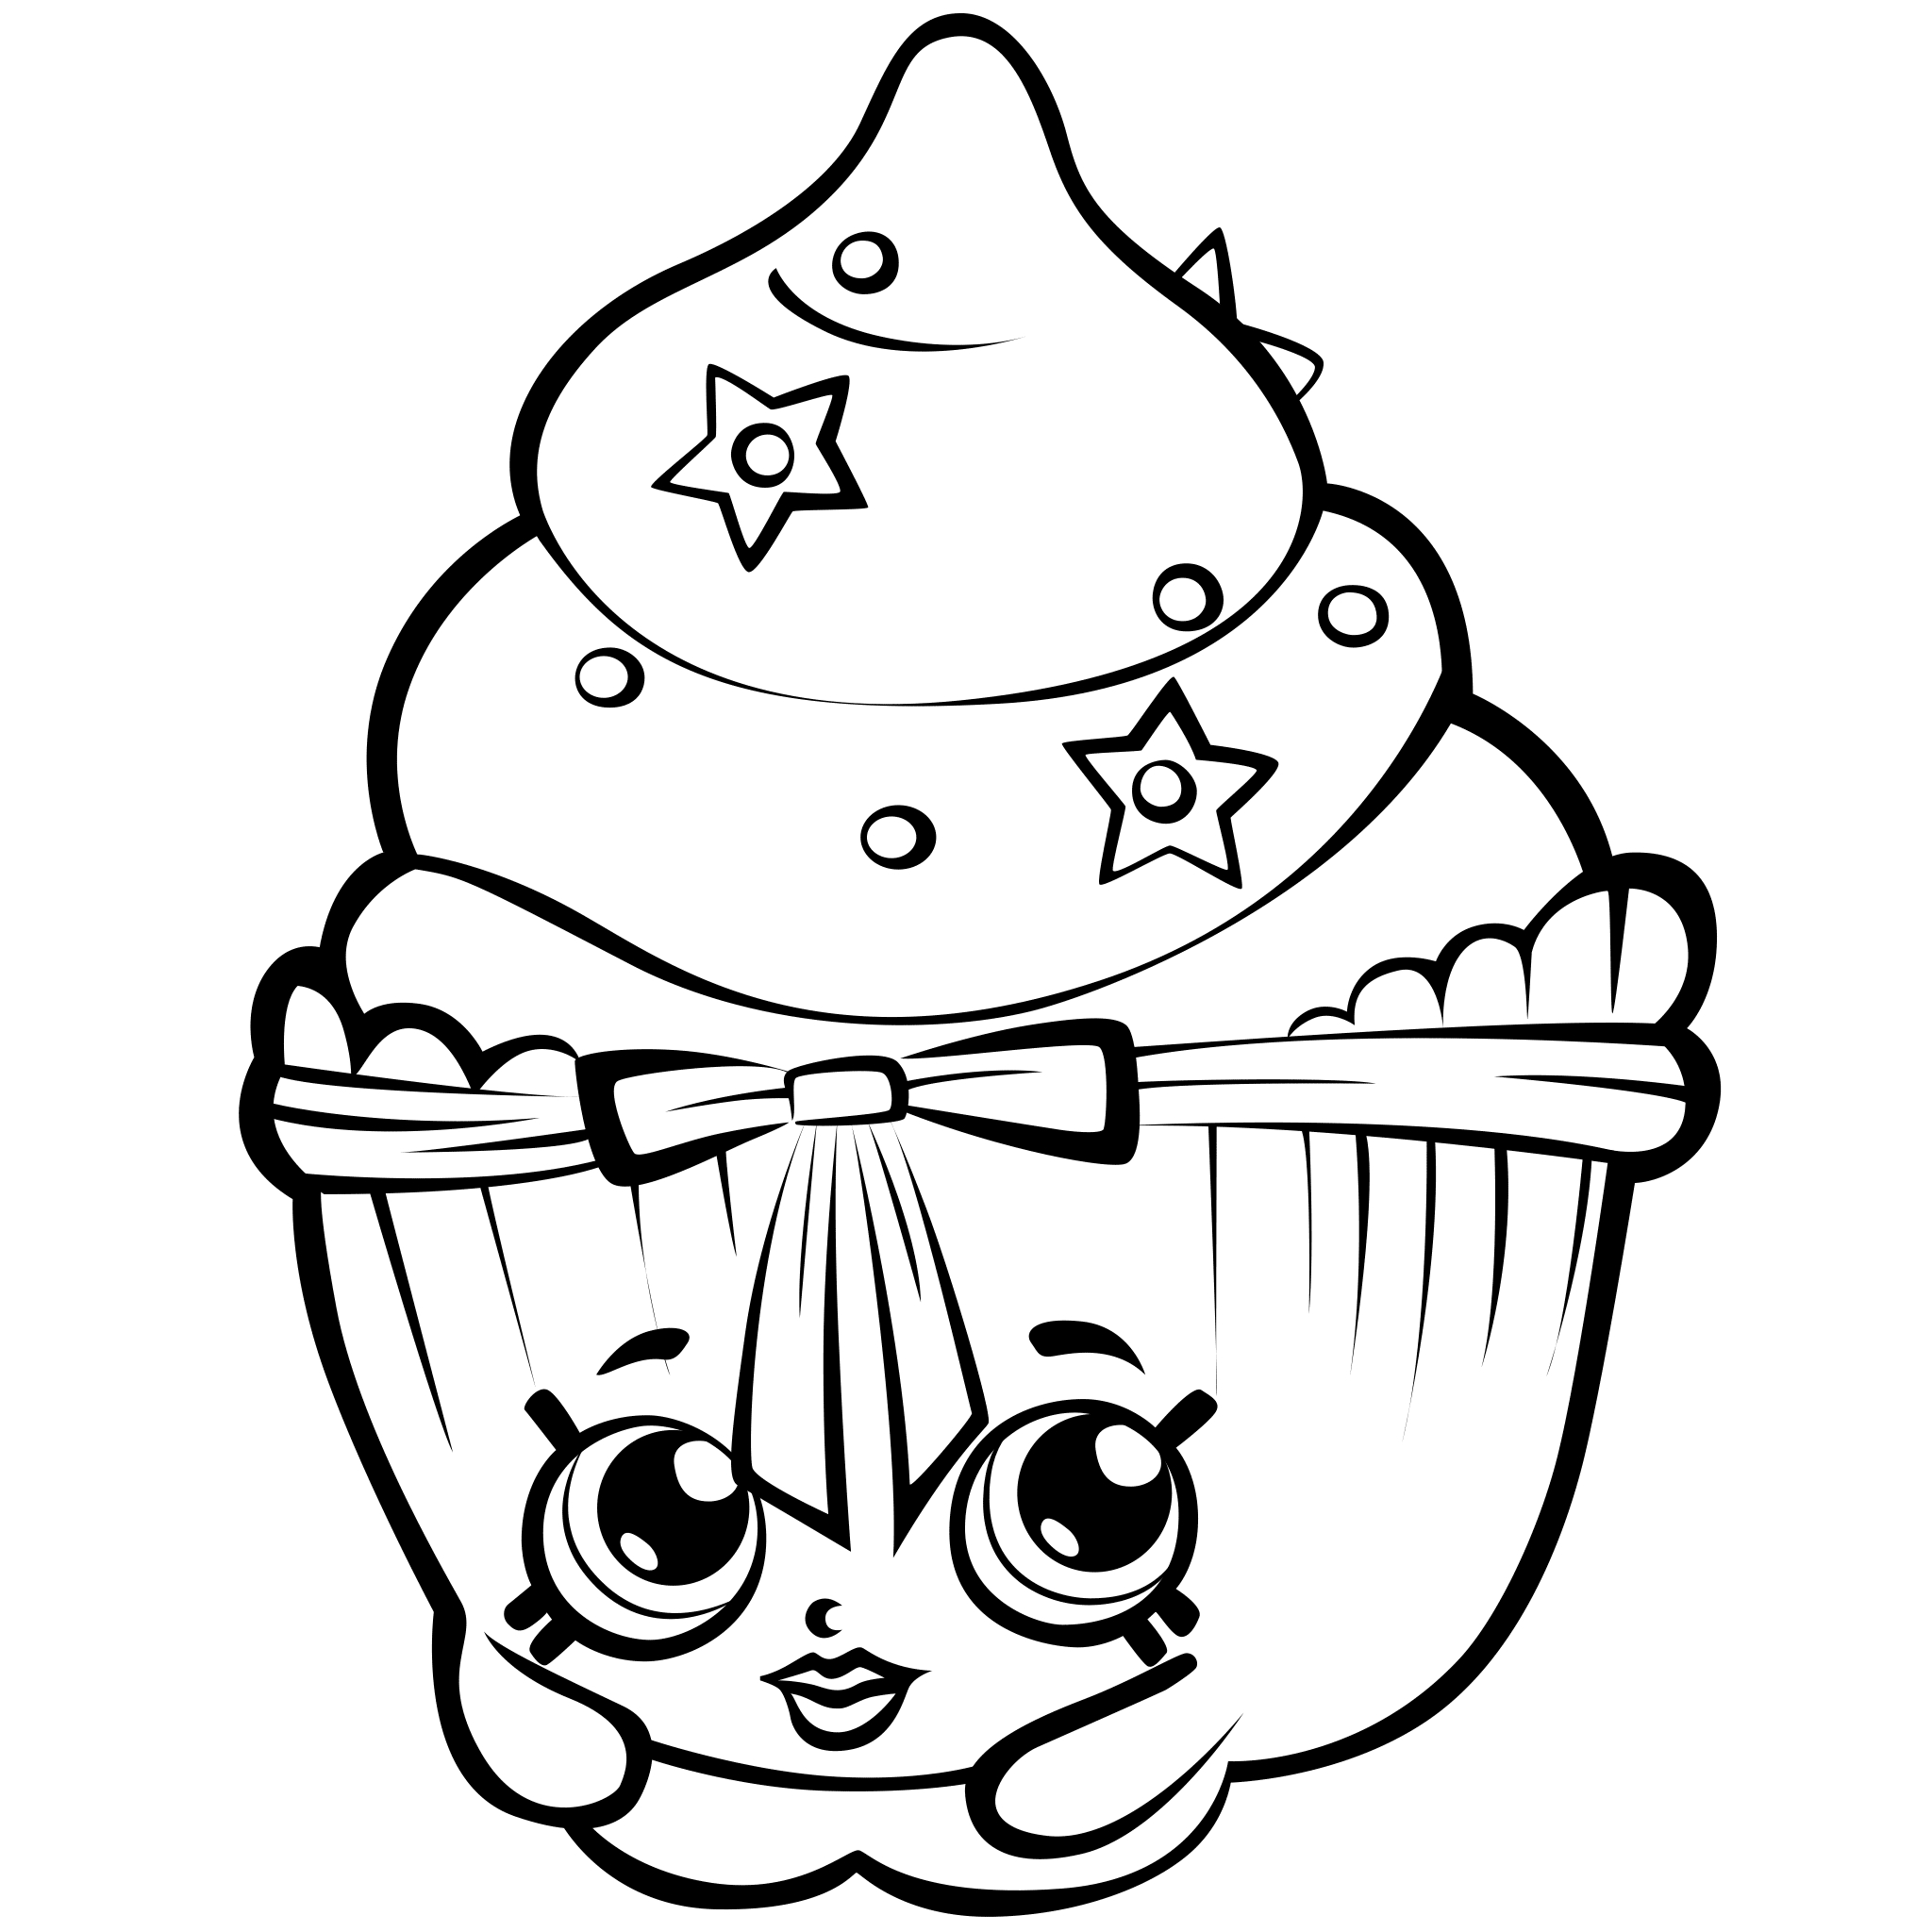 2048x2048 Shopkins Coloring Pages To Print Of Cheeky Choklet Full Pages